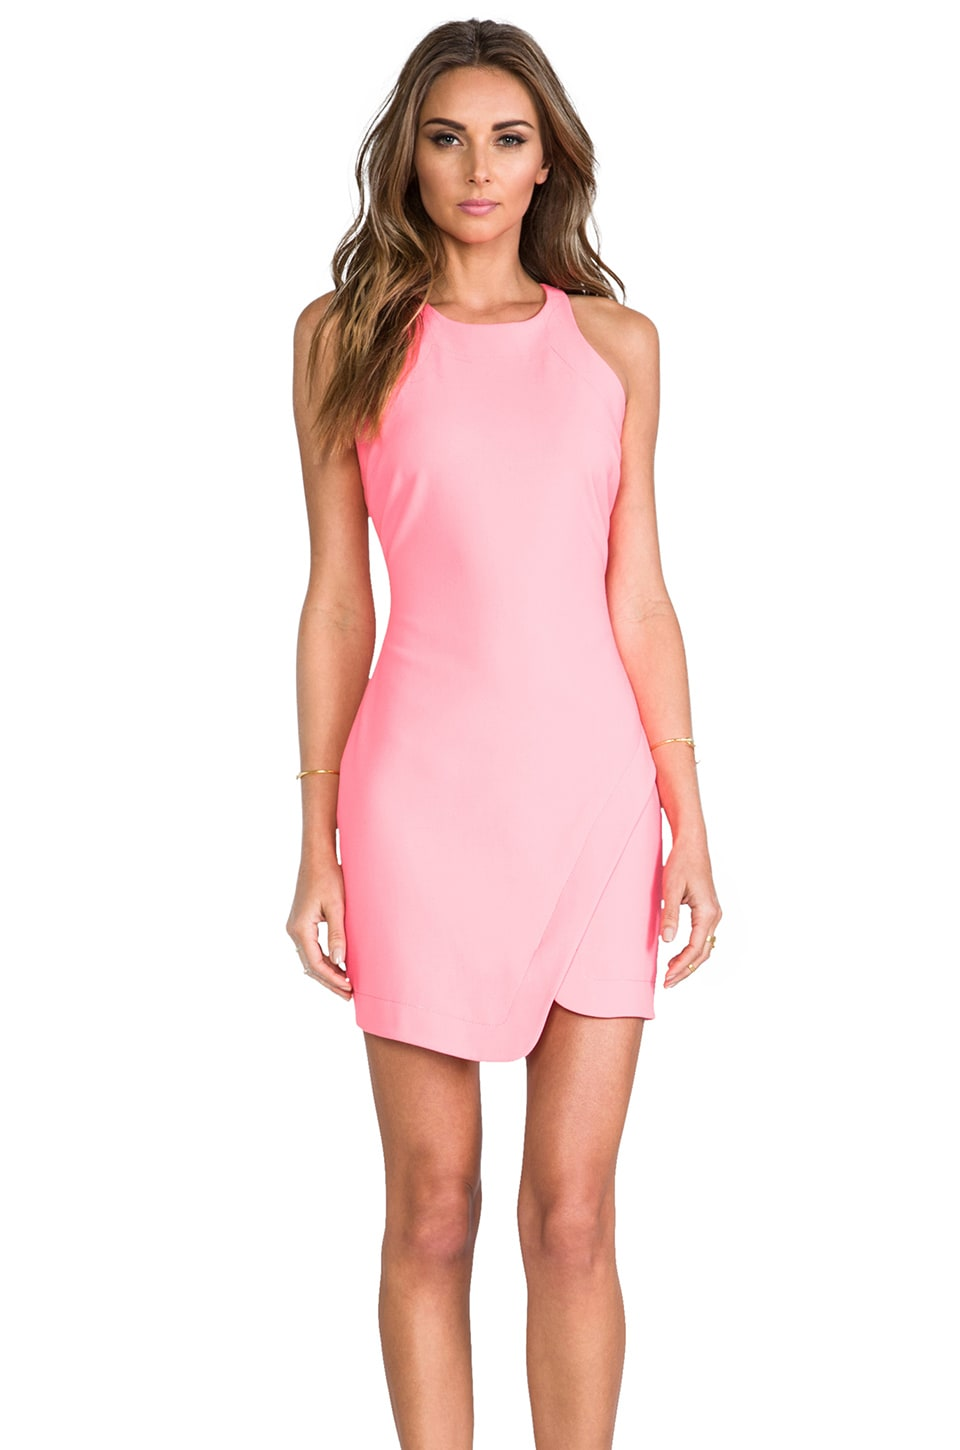 Elizabeth and James x REVOLVE Bardot Dress in Hot Coral